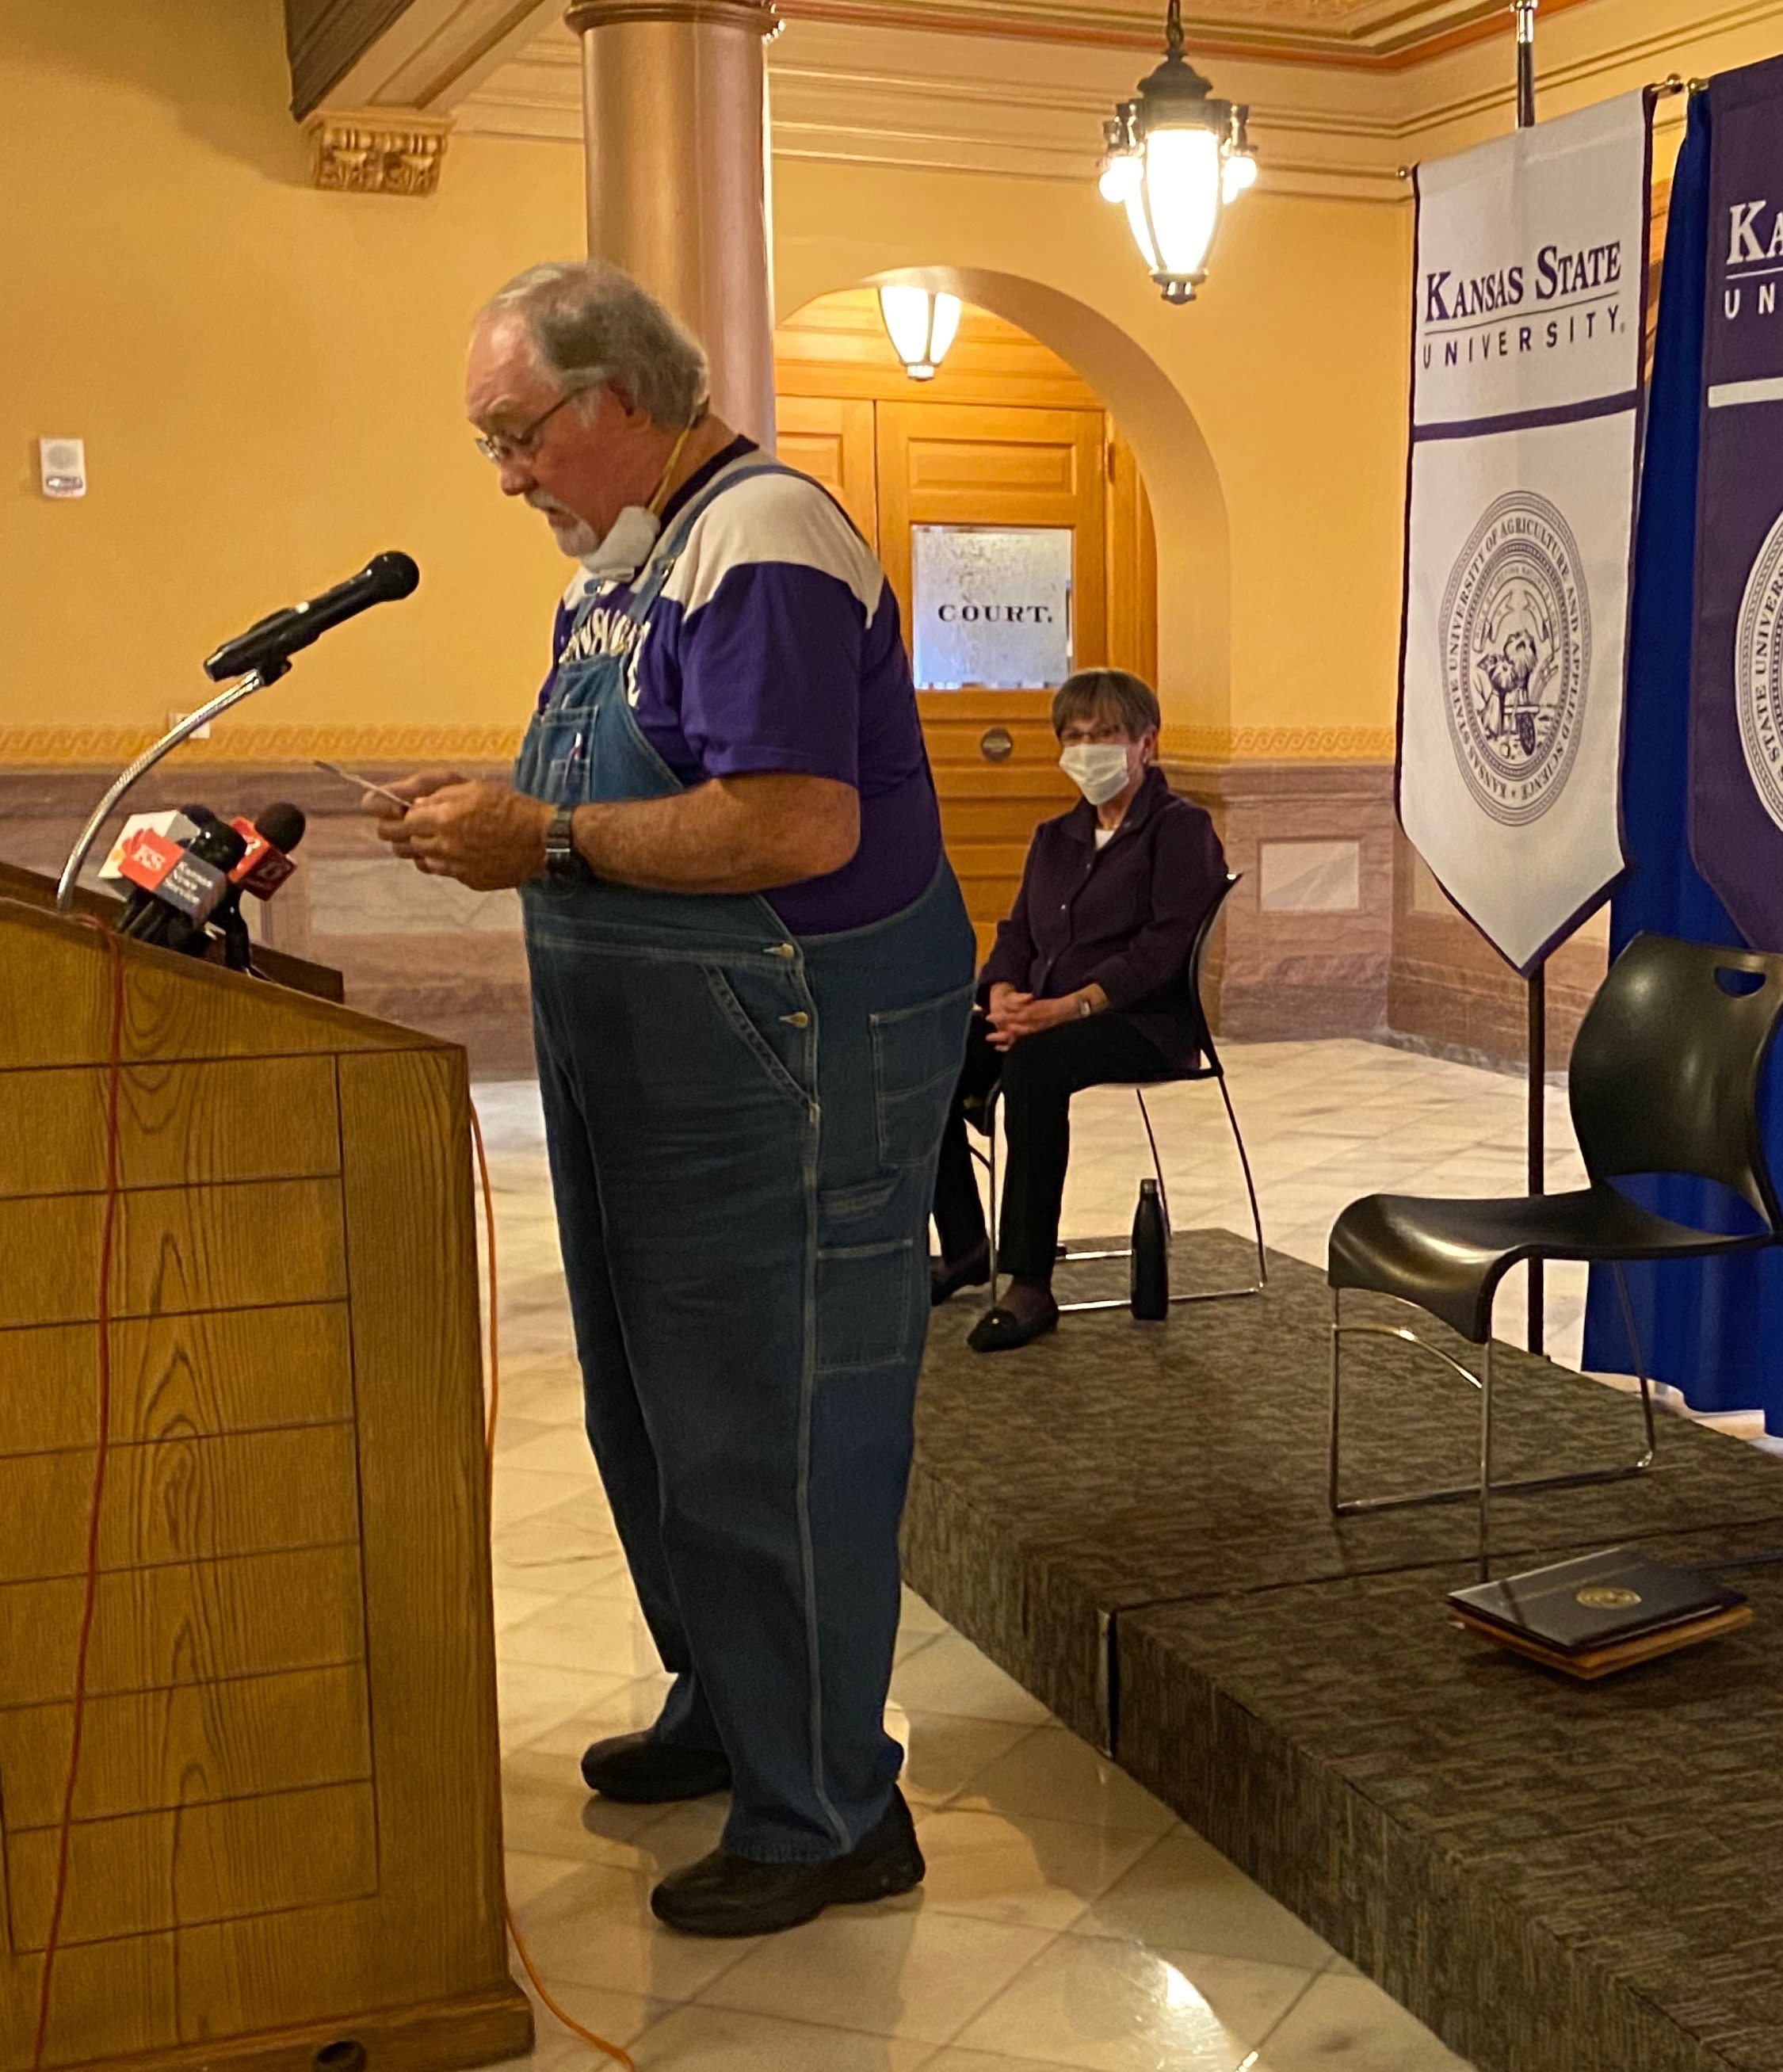 Retired Kansas farmer Dennis Ruhnke, of Troy, accepting a degree from K-State President Richard Myers and Governor Laura Kelly.  Ruhnke was just a couple credits shy of earning his bachelor's degree from K-State in 1971 when his father died and Ruhnke left school to care for his mother and the family farm.  (Photo from governor's office.)